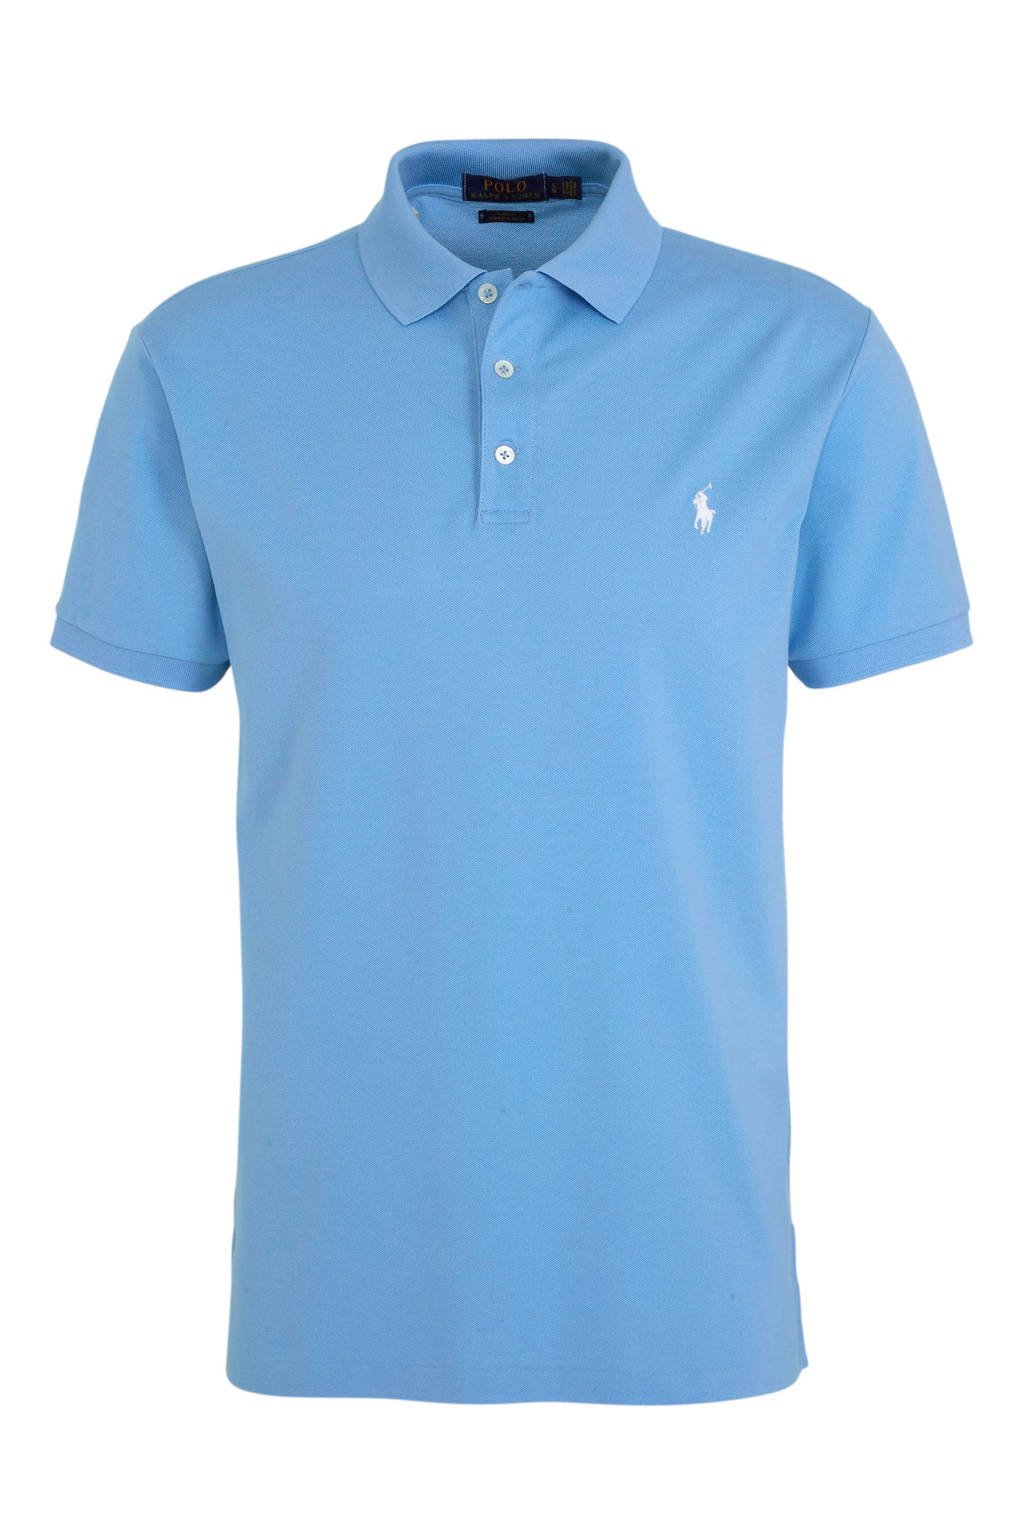 POLO Ralph Lauren slim fit polo lichtblauw, Lichtblauw